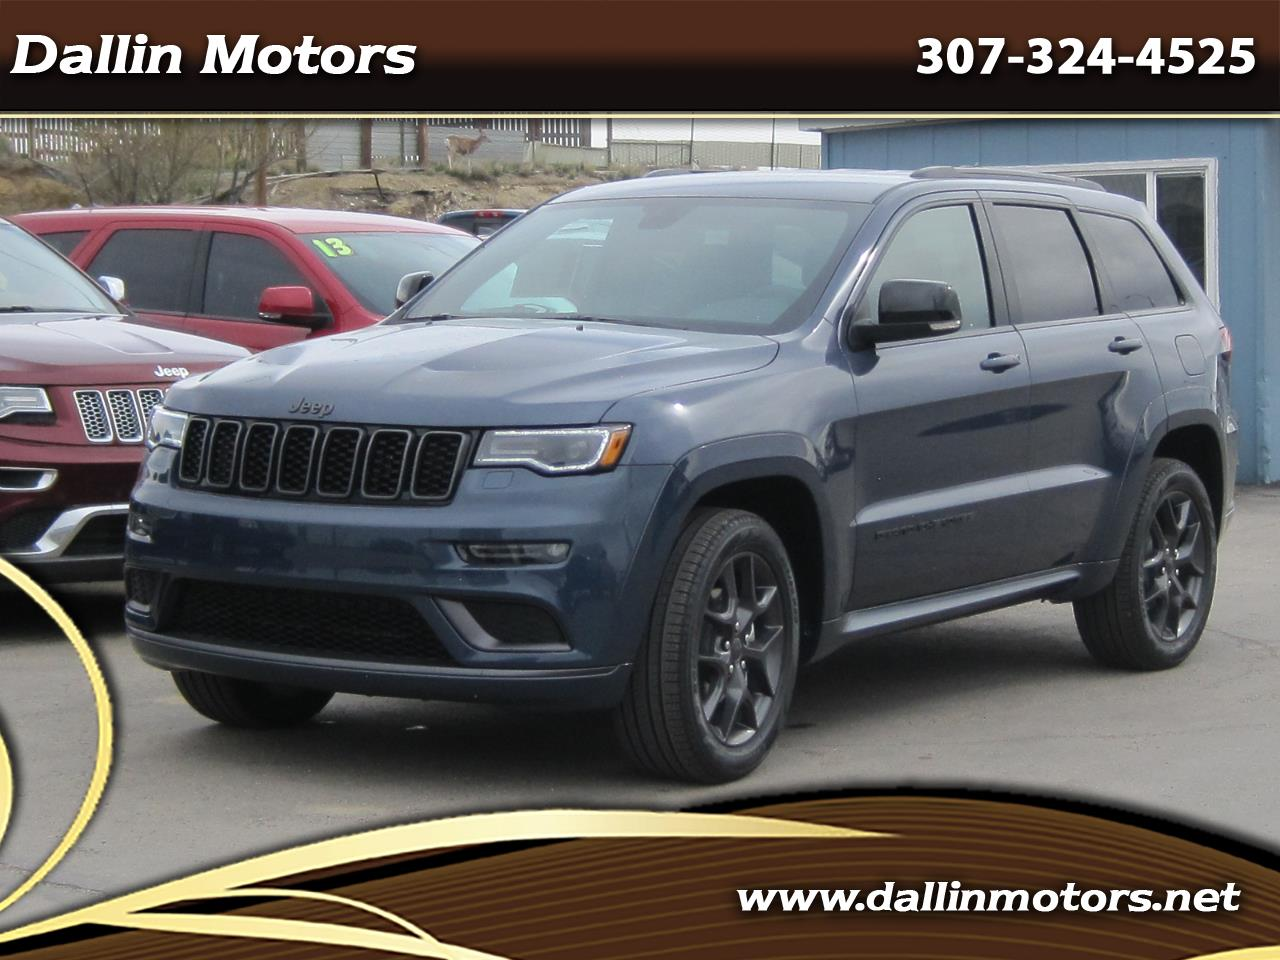 2019 Jeep Grand Cherokee Limited X 4x4